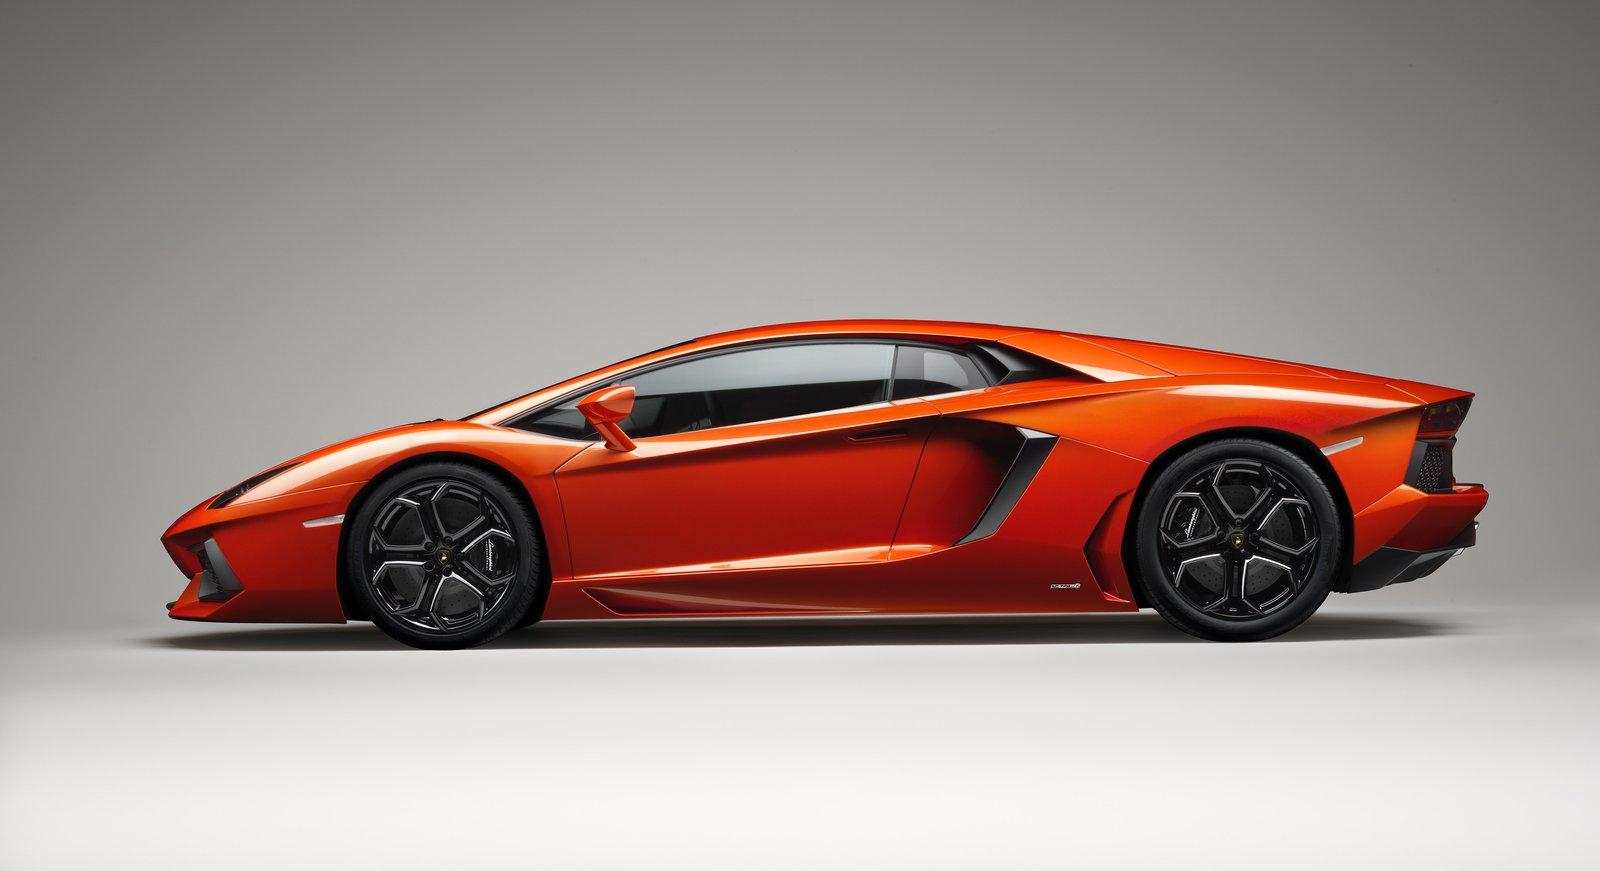 lamborghini aventador official video download with 37227 on Lamborghini Dark Wallpapers Hd as well Super Lamborghini Aventador Car 22 Wallpapers besides 48771 Lamborghini Aventador Aige Edit Paintjob moreover Winter as well Transformers Lockdown Car.